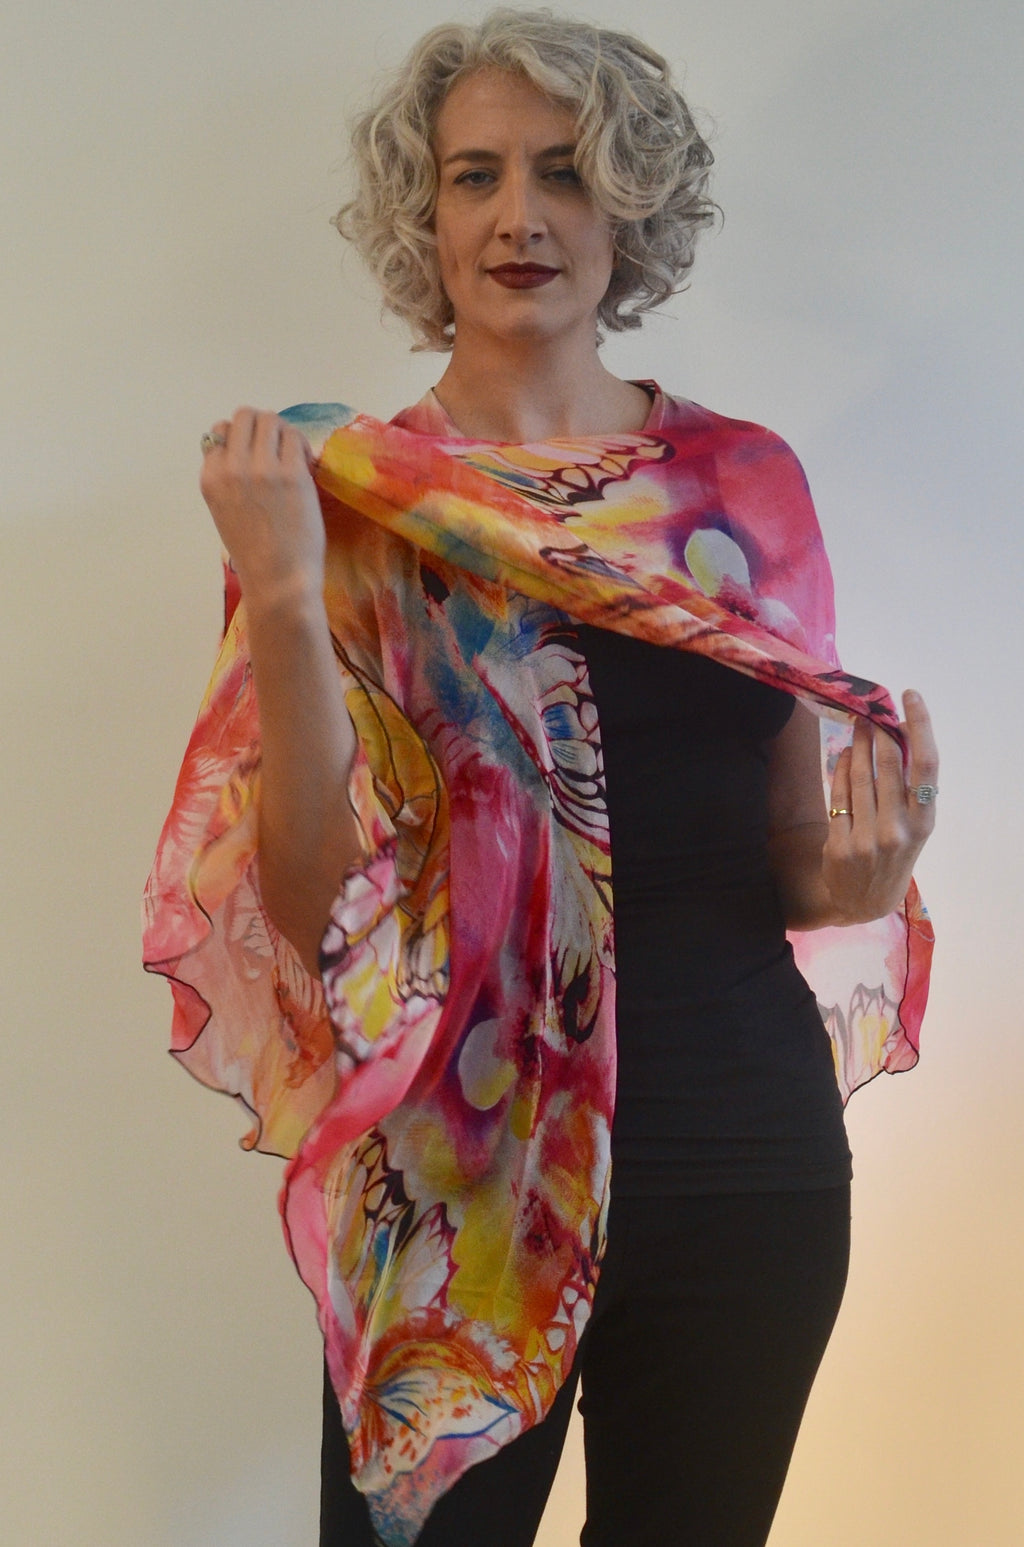 Triangled Ruana in pinks with butterflies